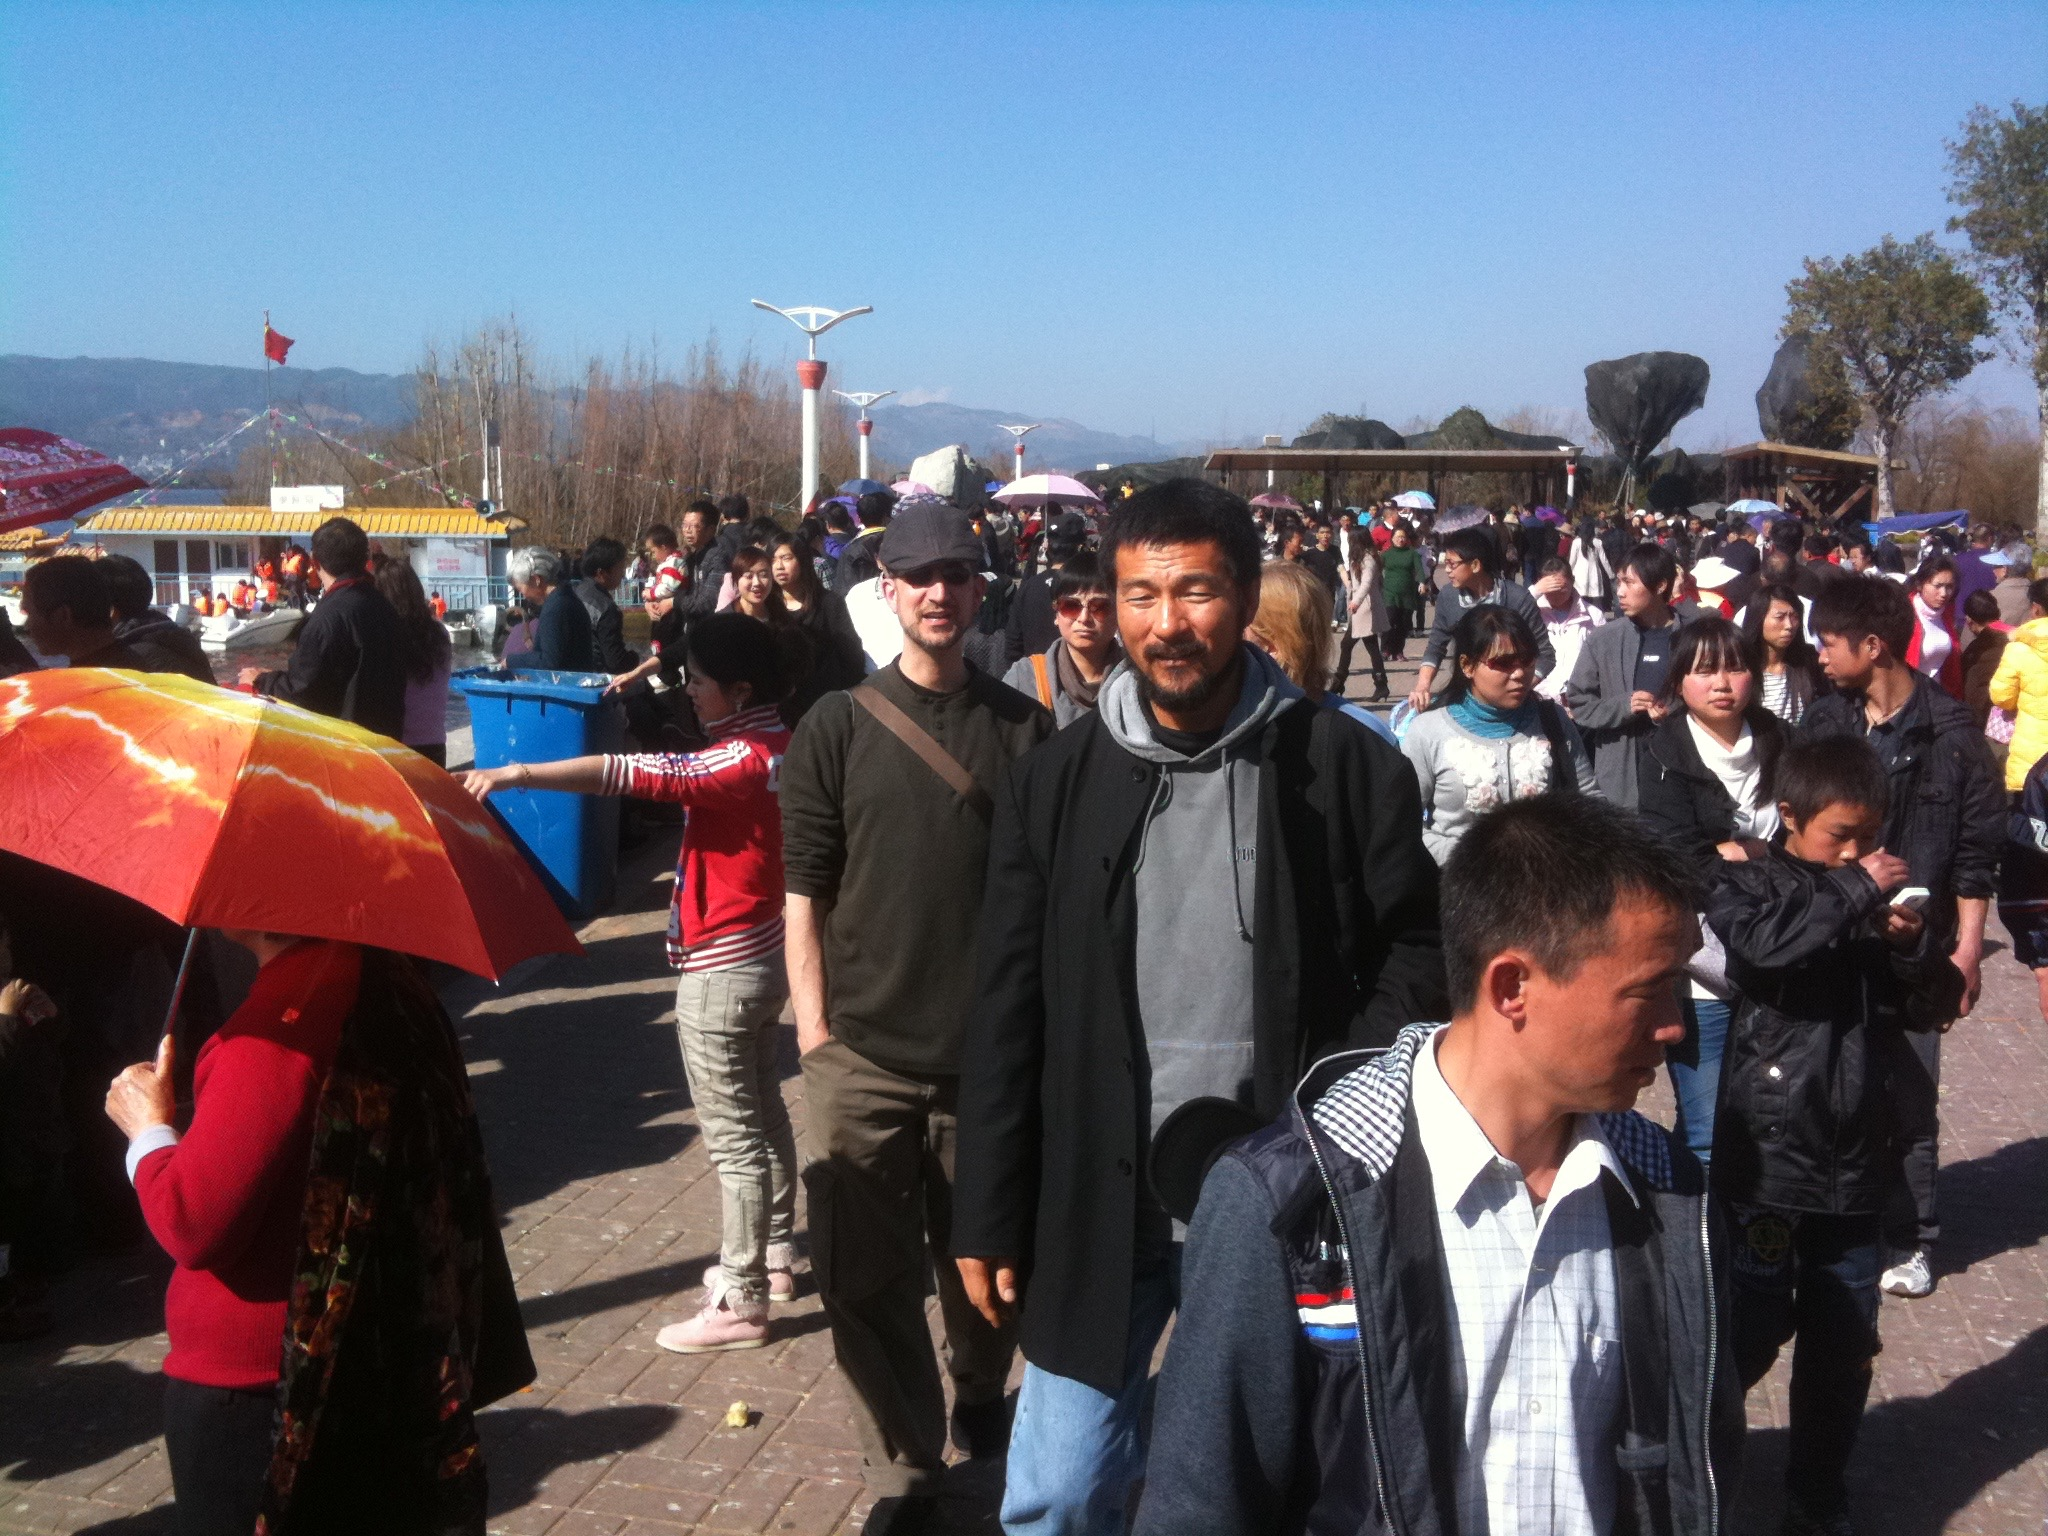 Moving through a Kunming crowd